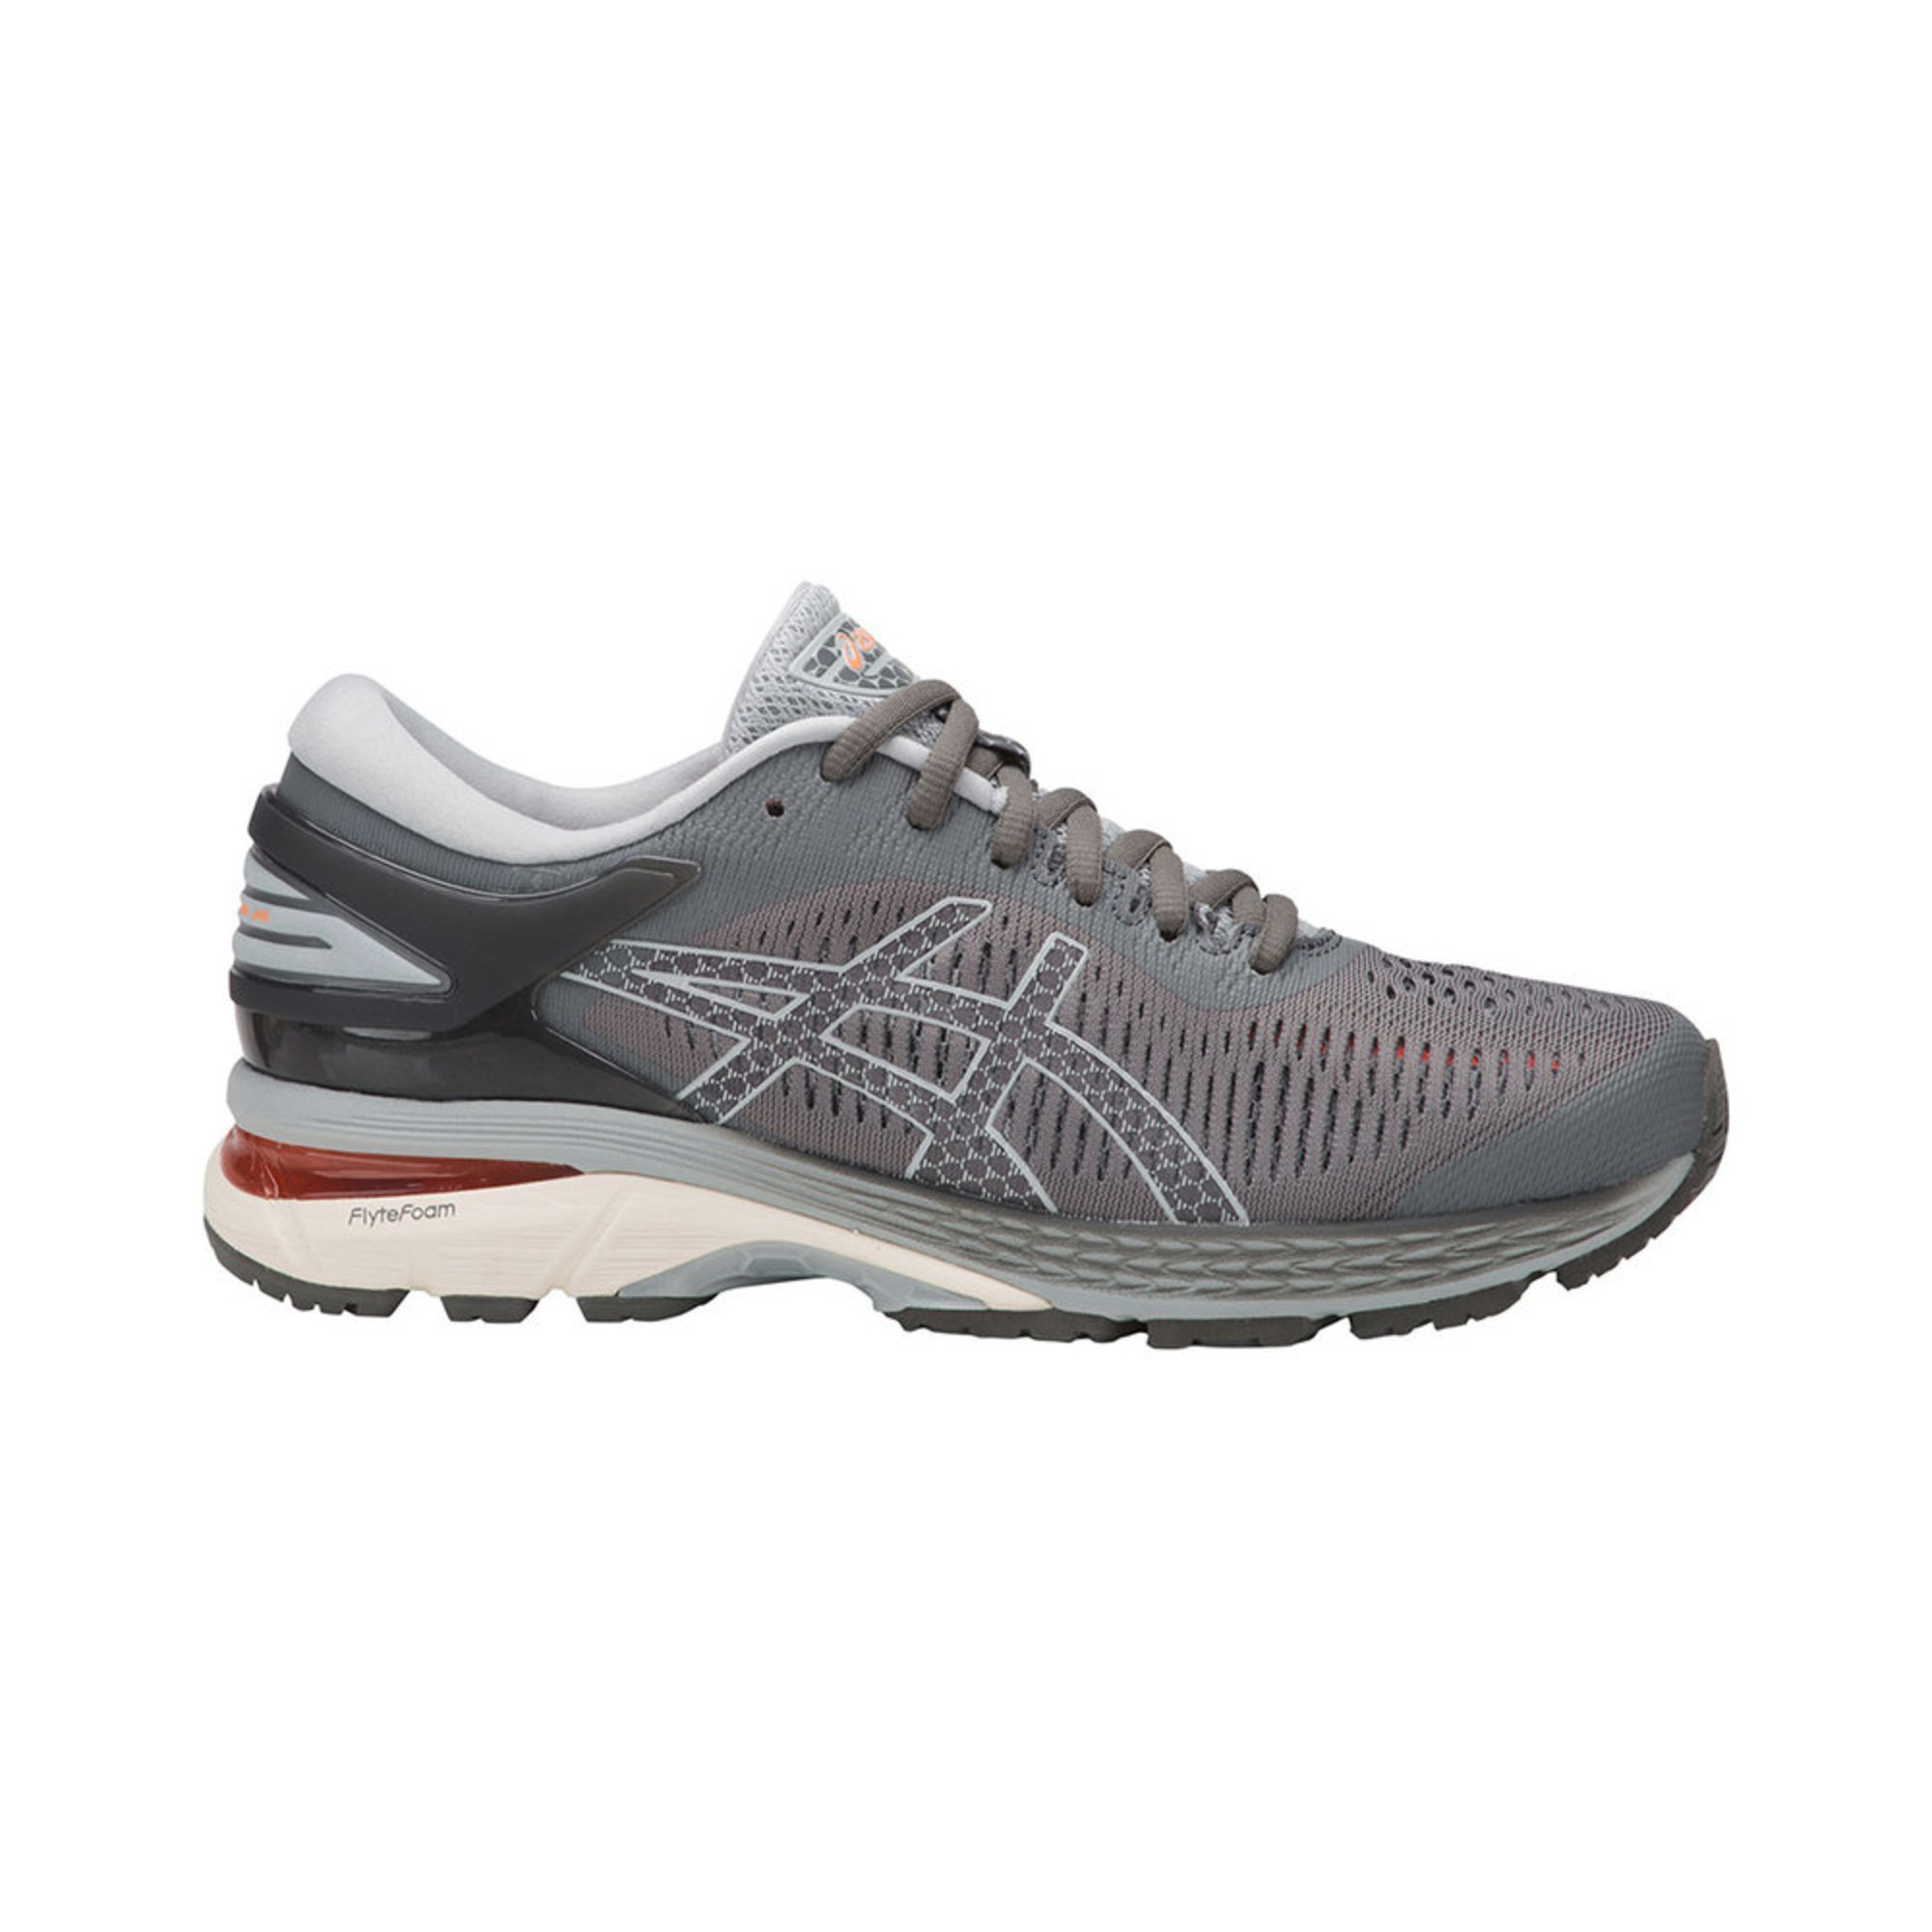 f7727723632a Asics. Asics Women s Gel Kayano 25 Running Shoe